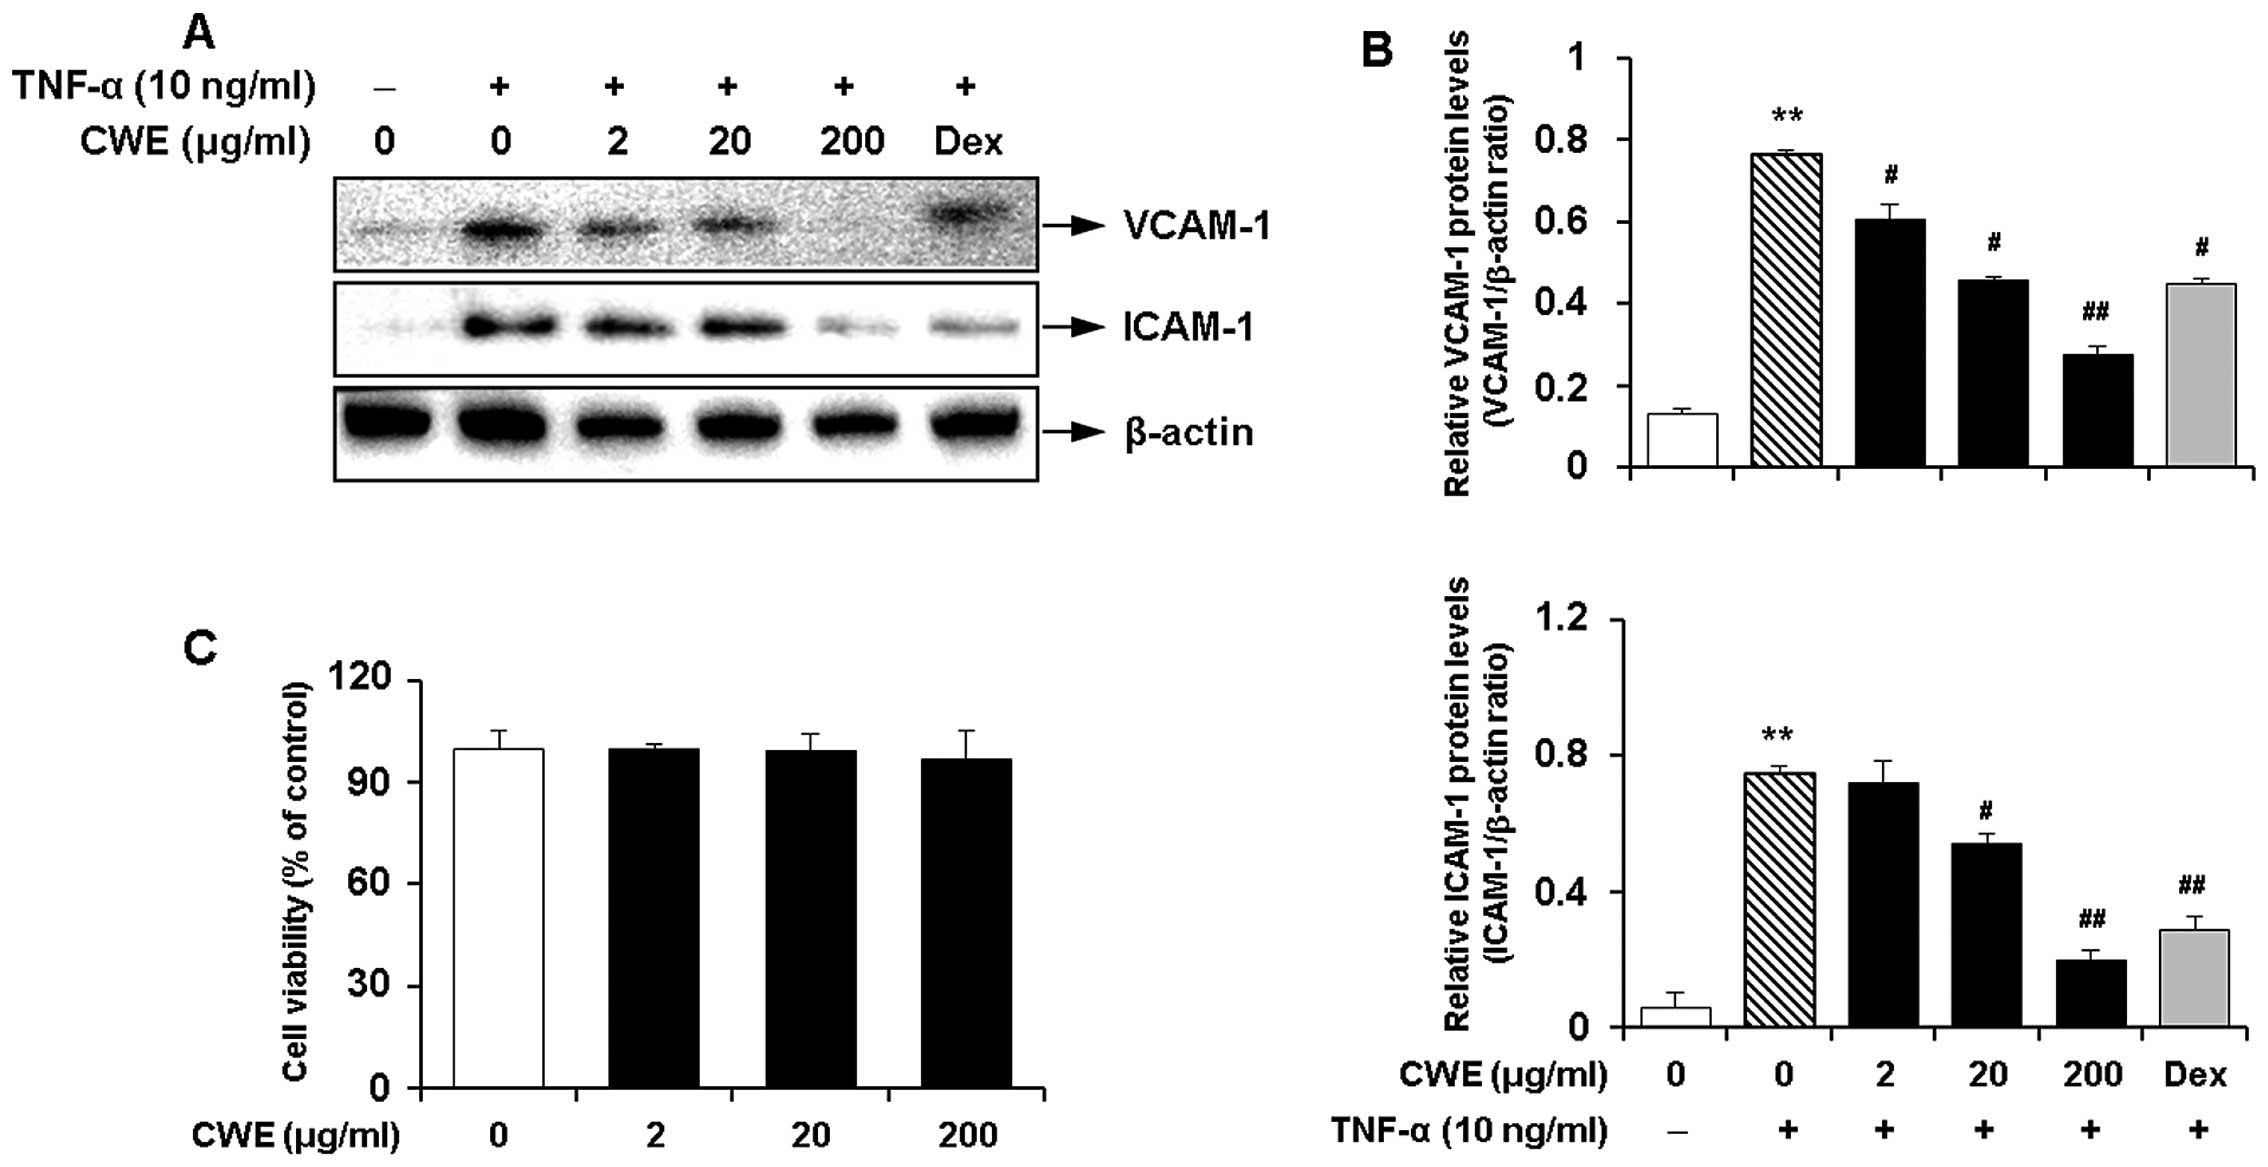 C Cells at confluence in 96 well plates were treated with CWE 2 20 and 200 μg ml for 16 h and cell viability was determined by MTT assay